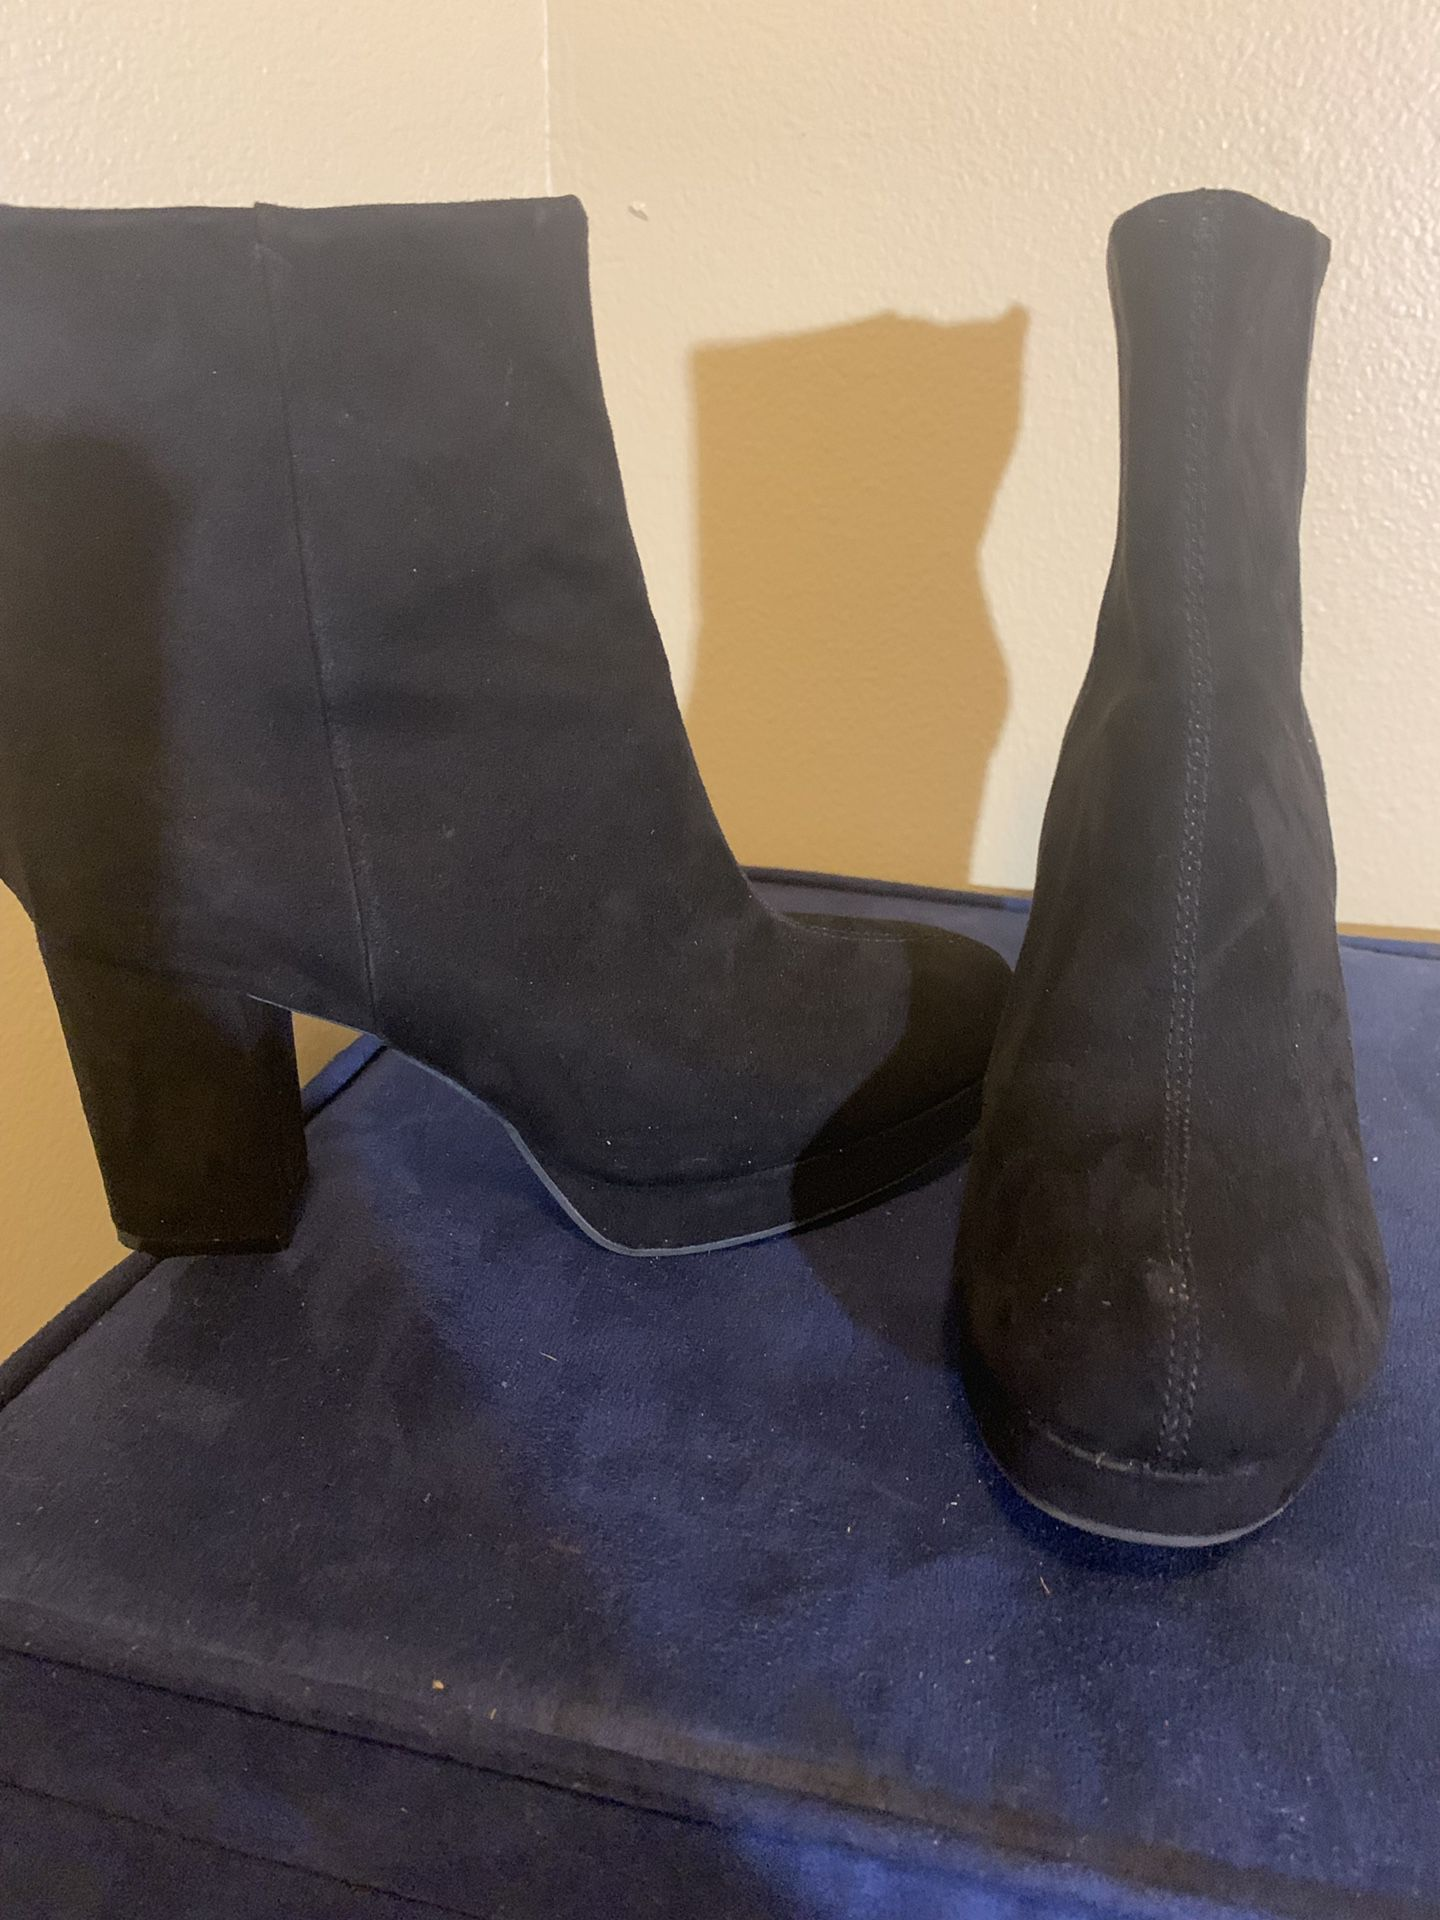 6 1/2 boots